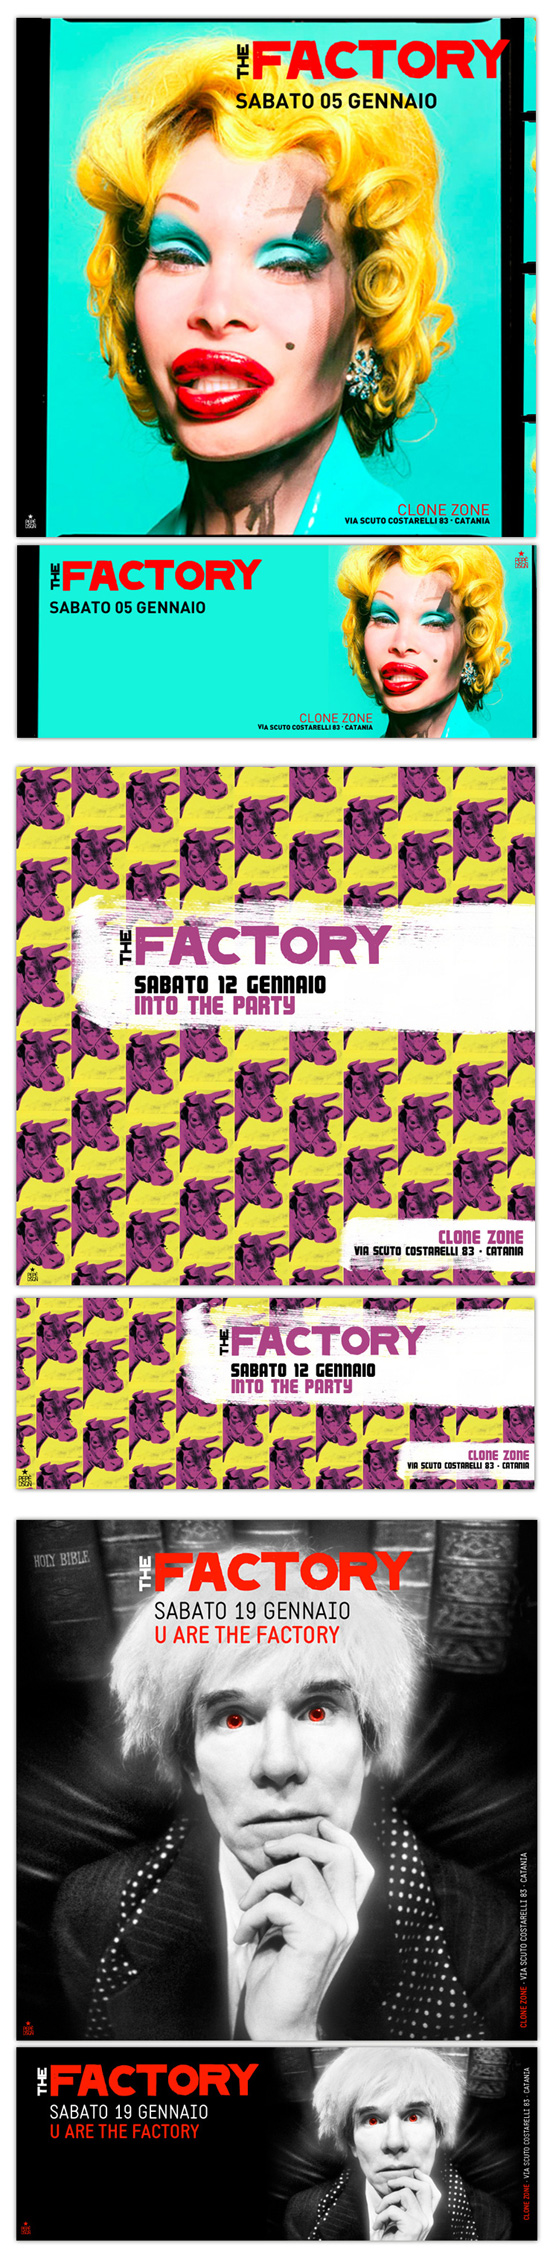 The Factory – Catania (IT)